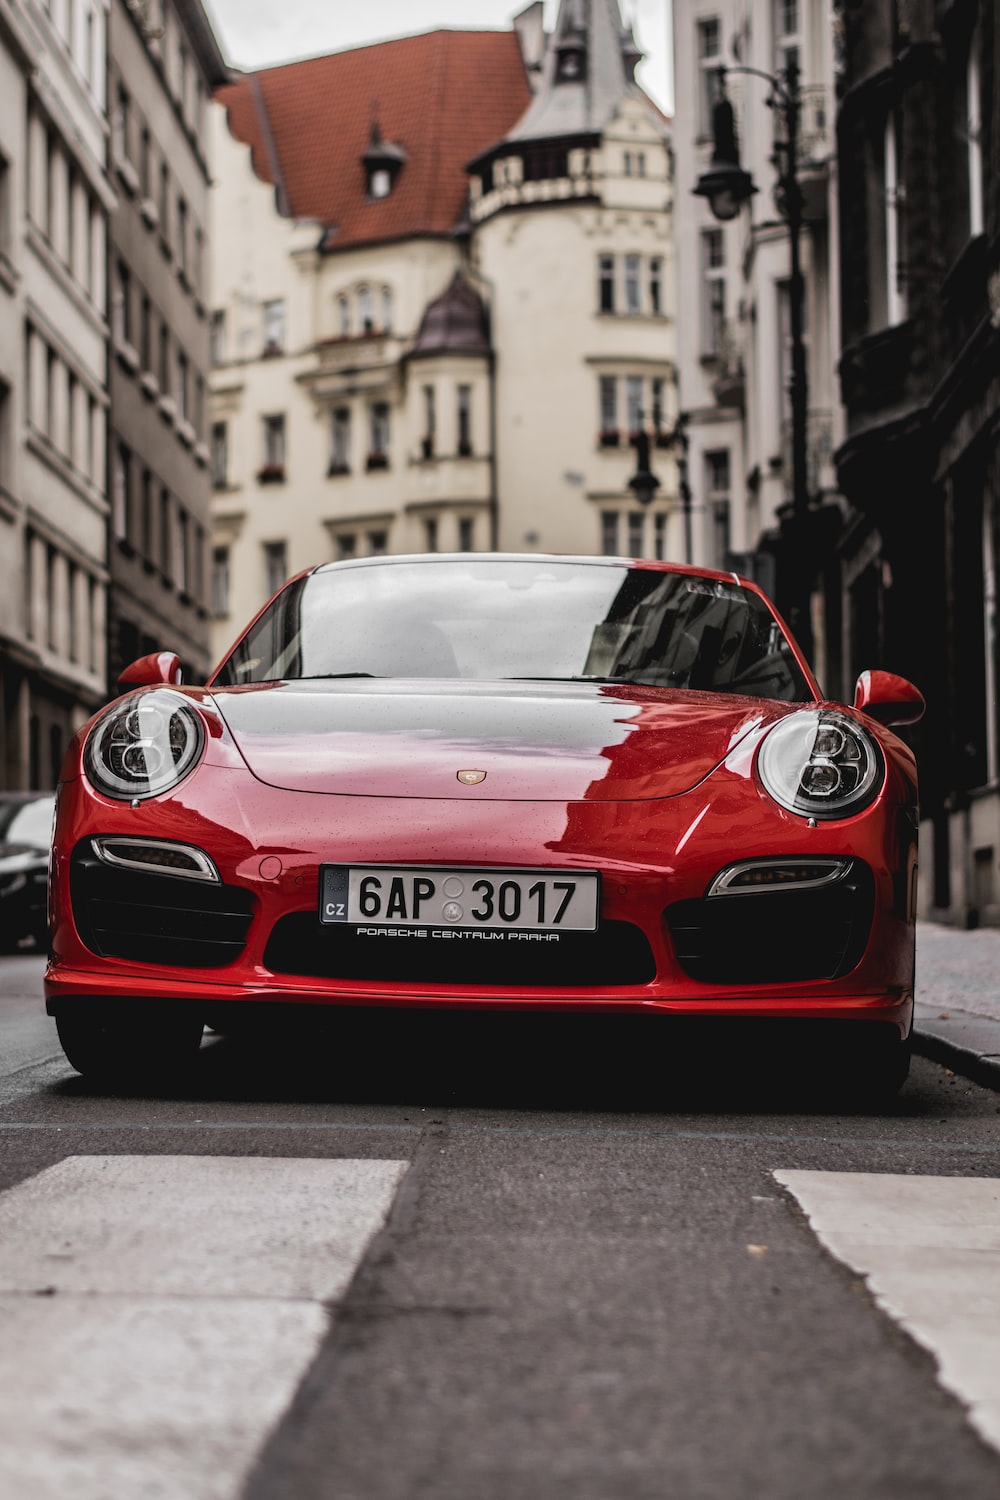 Red Porsche Vehicle During Daytime